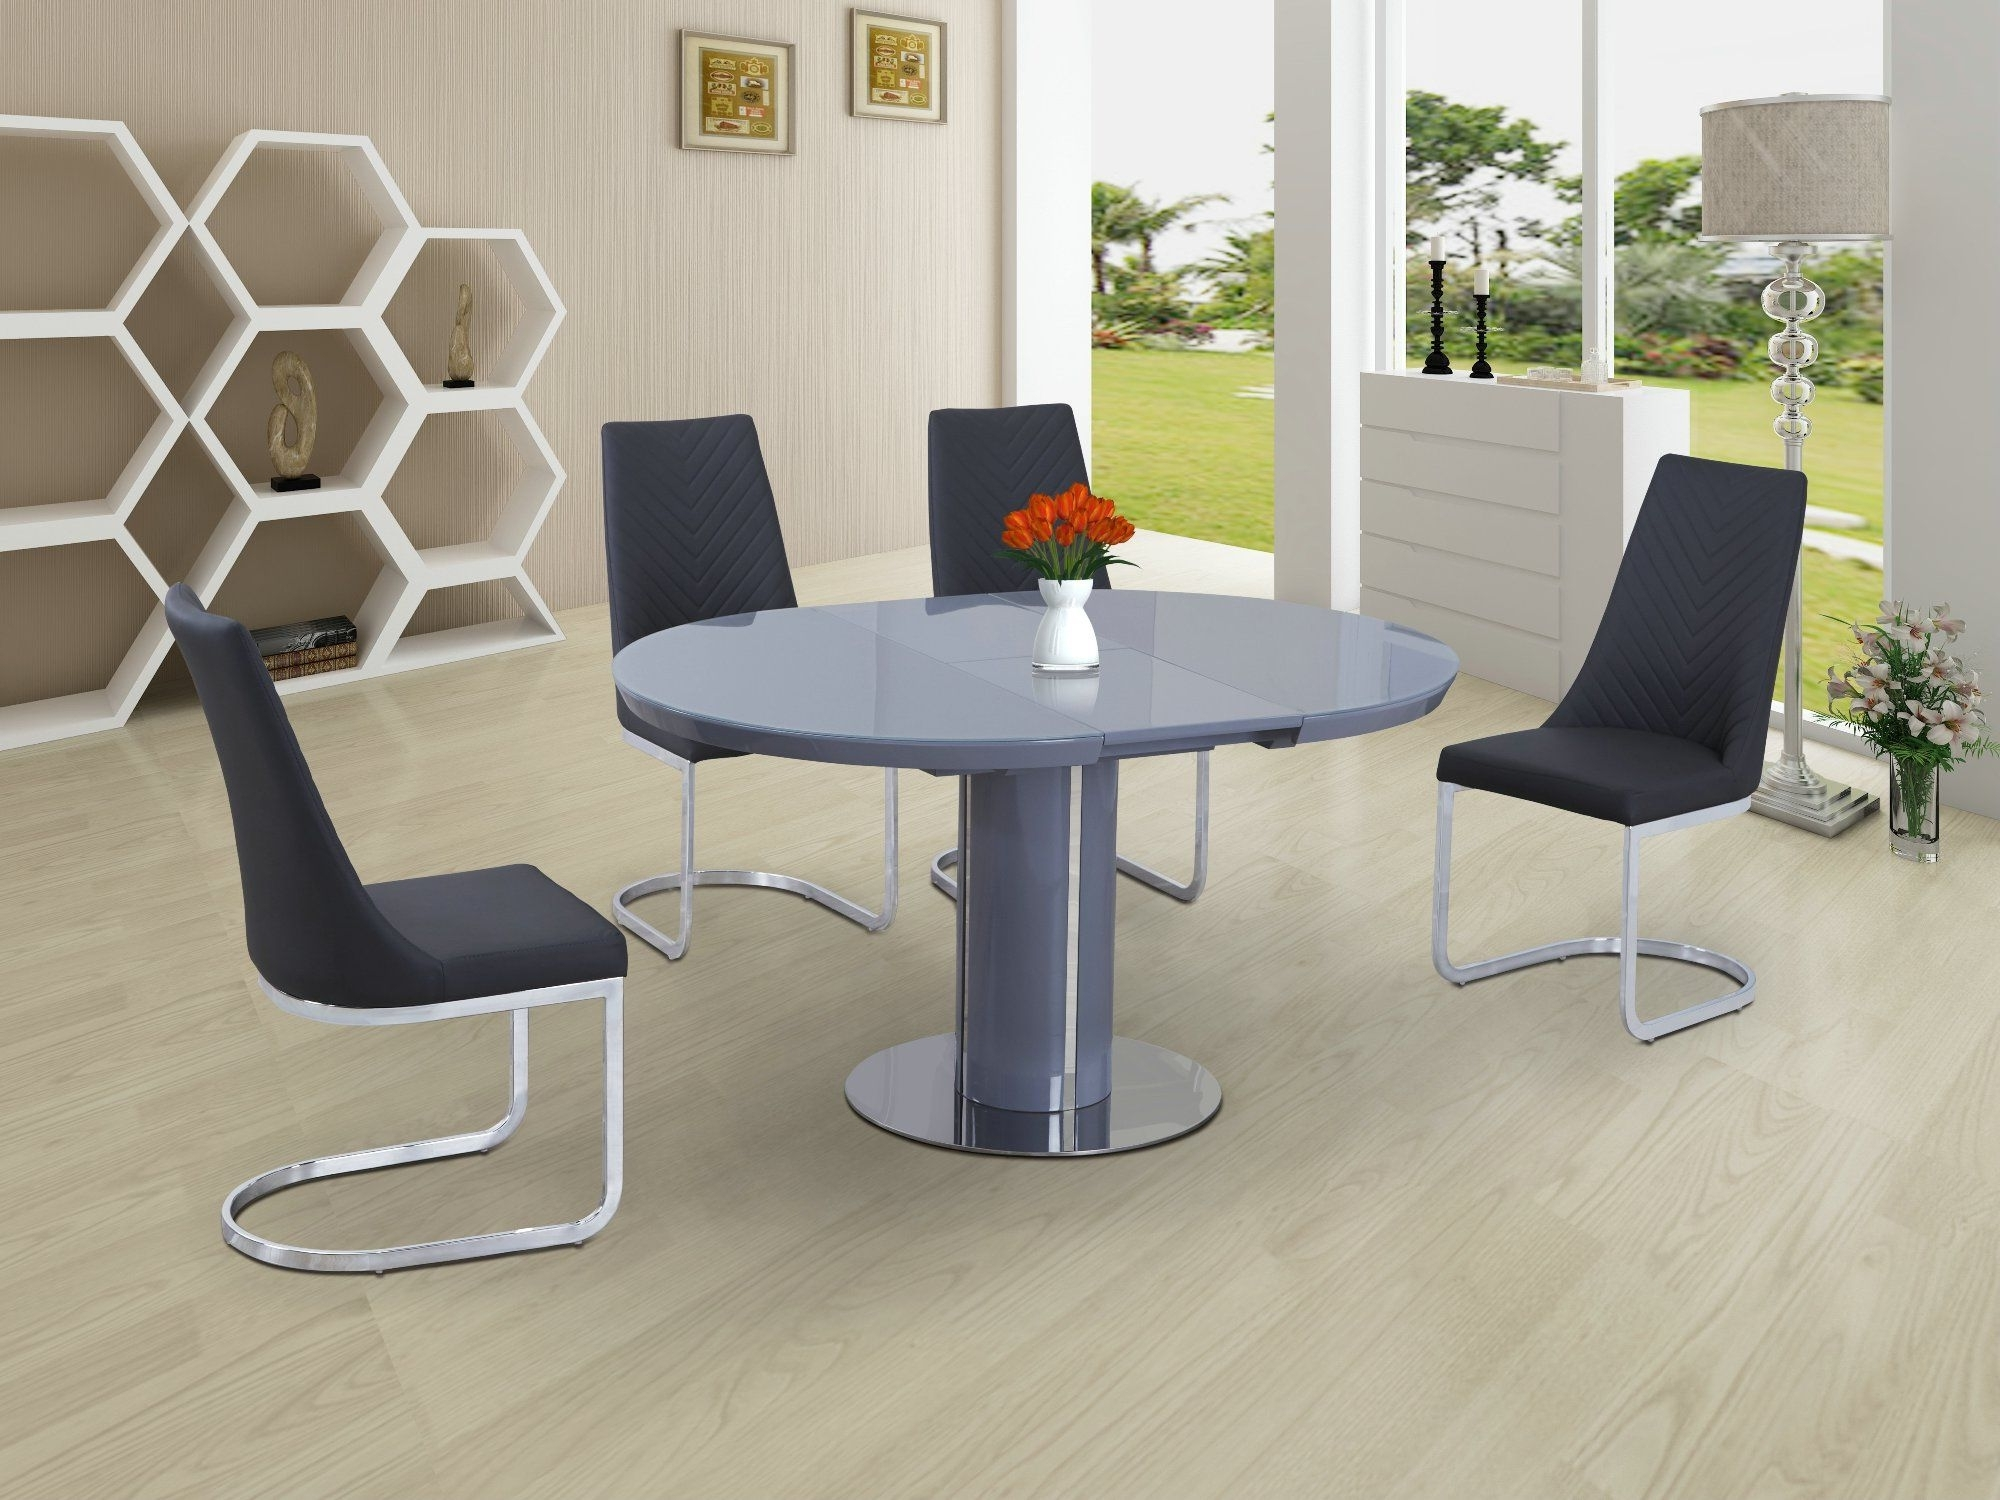 Most Current Extended Round Dining Tables In Eclipse Round Oval Gloss & Glass Extending 110 To 145 Cm Dining (View 13 of 25)